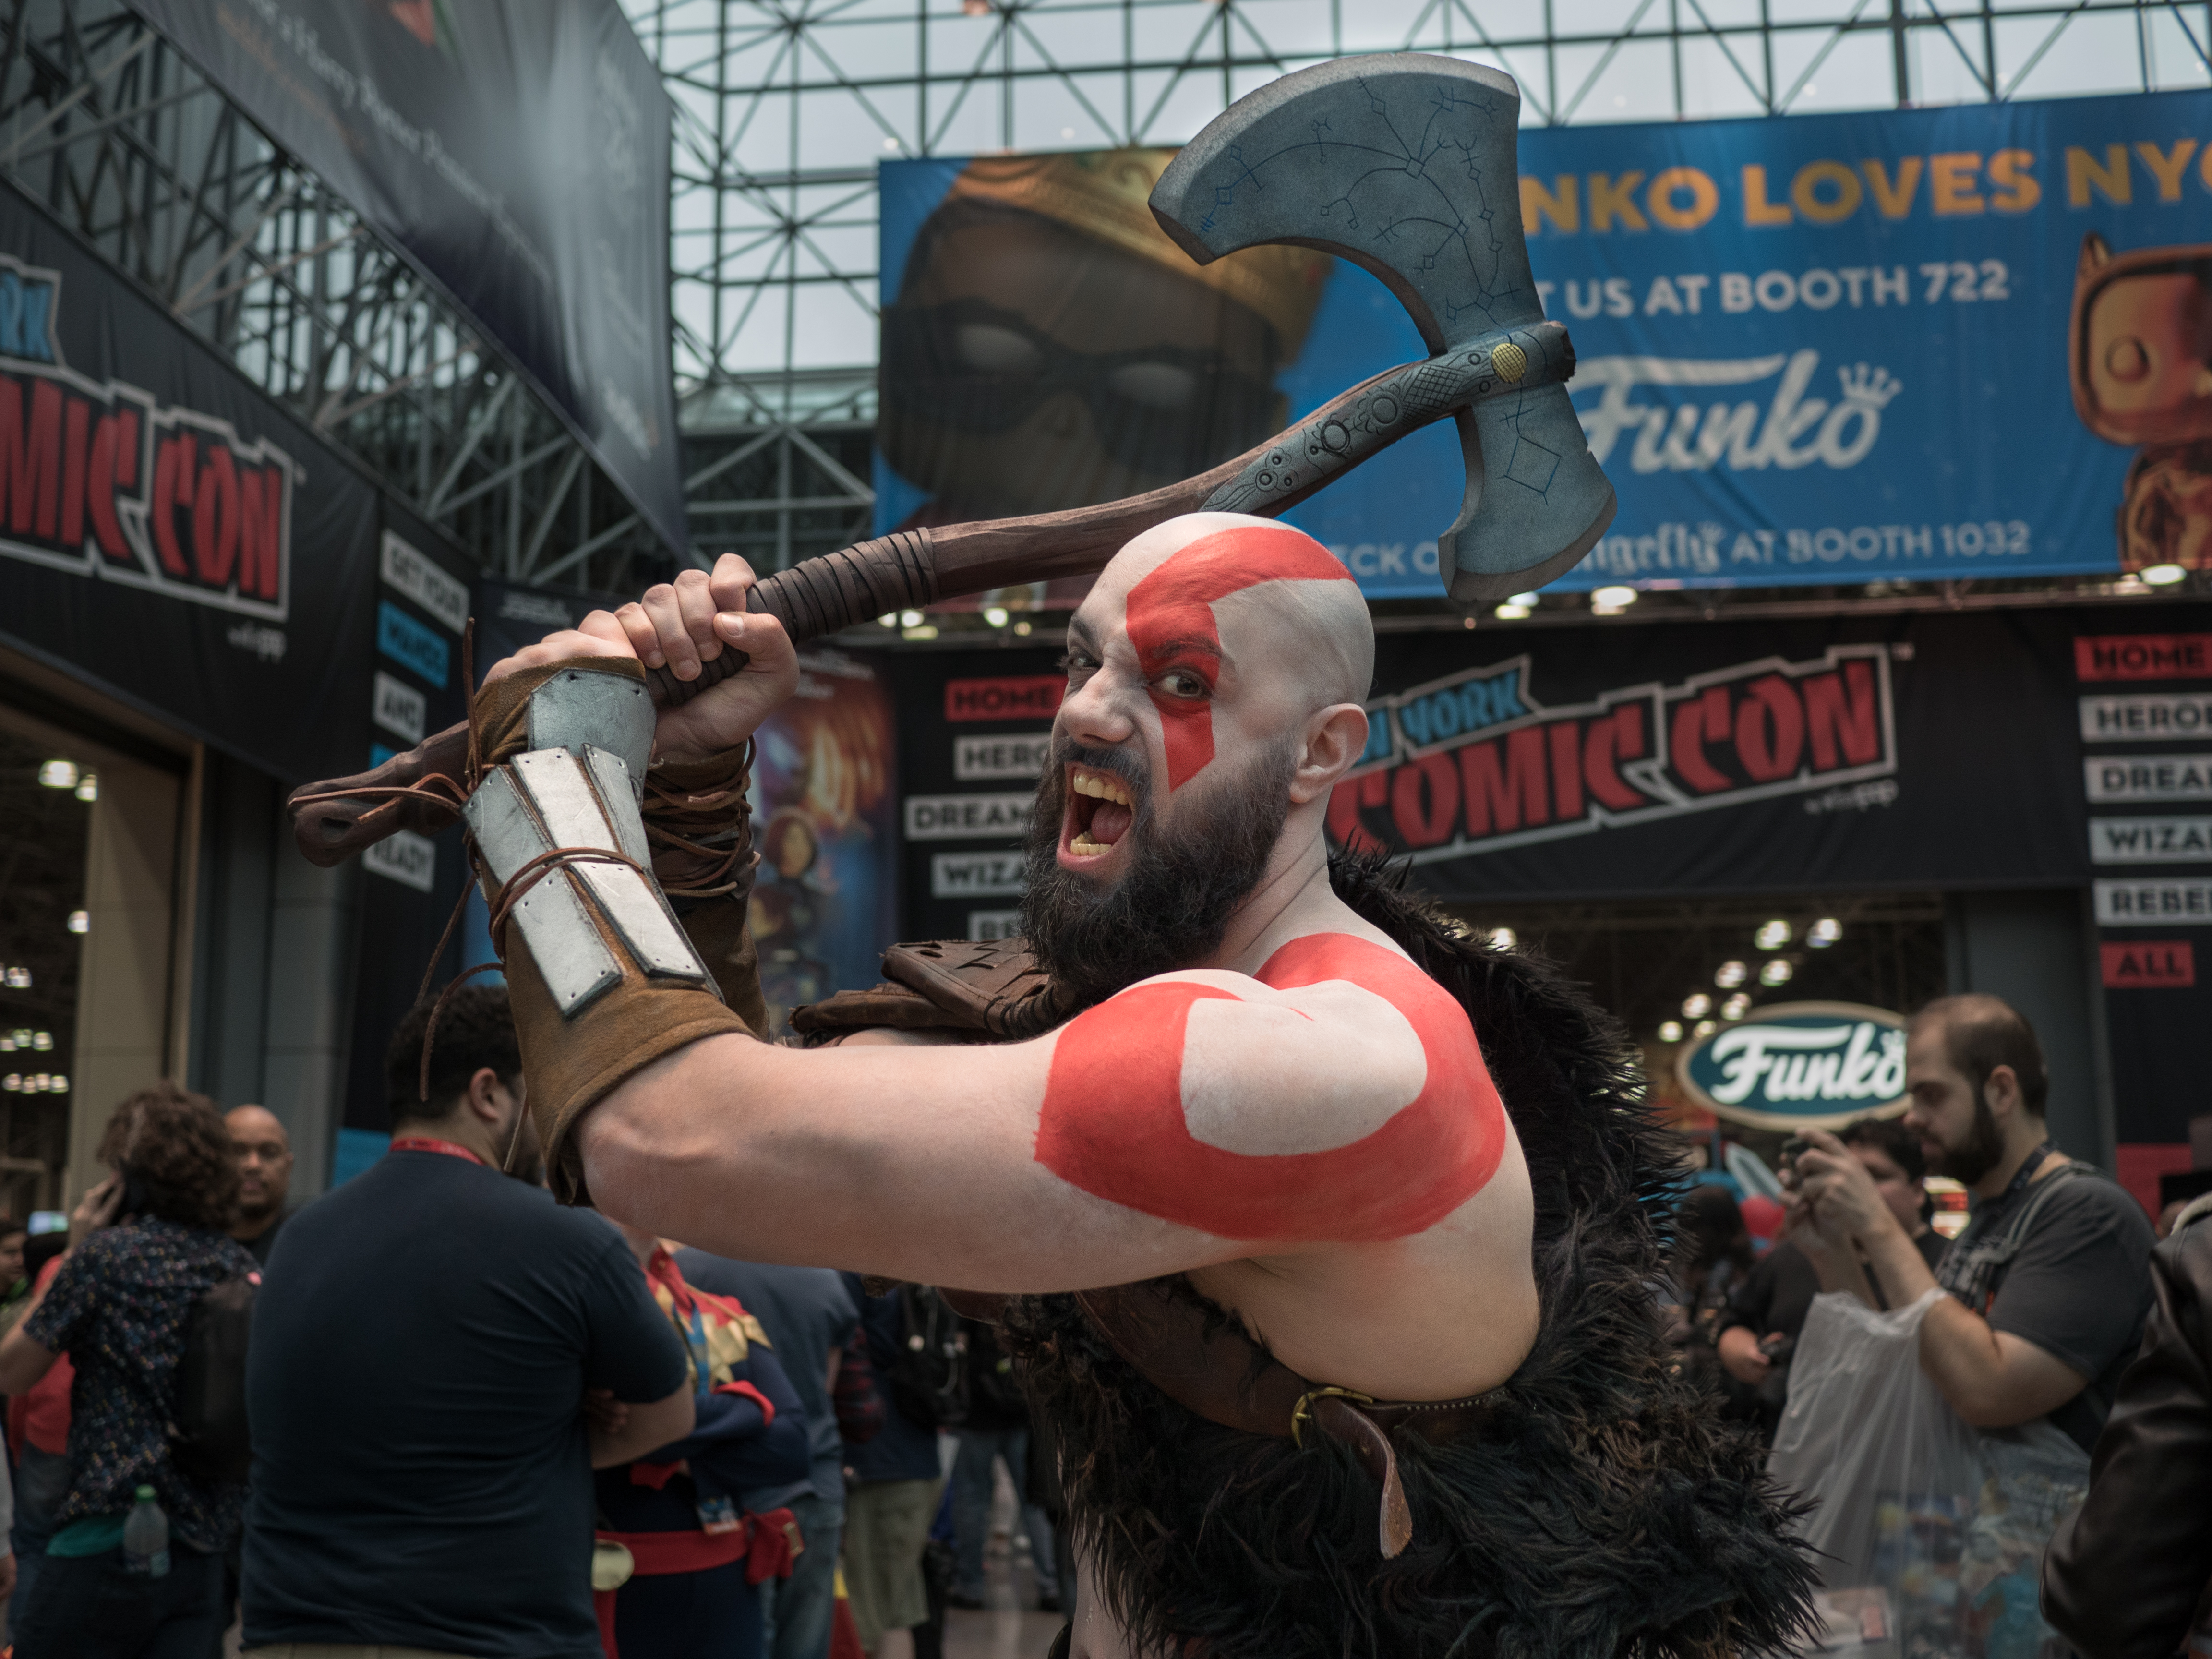 New York Comic Con - Wikipedia